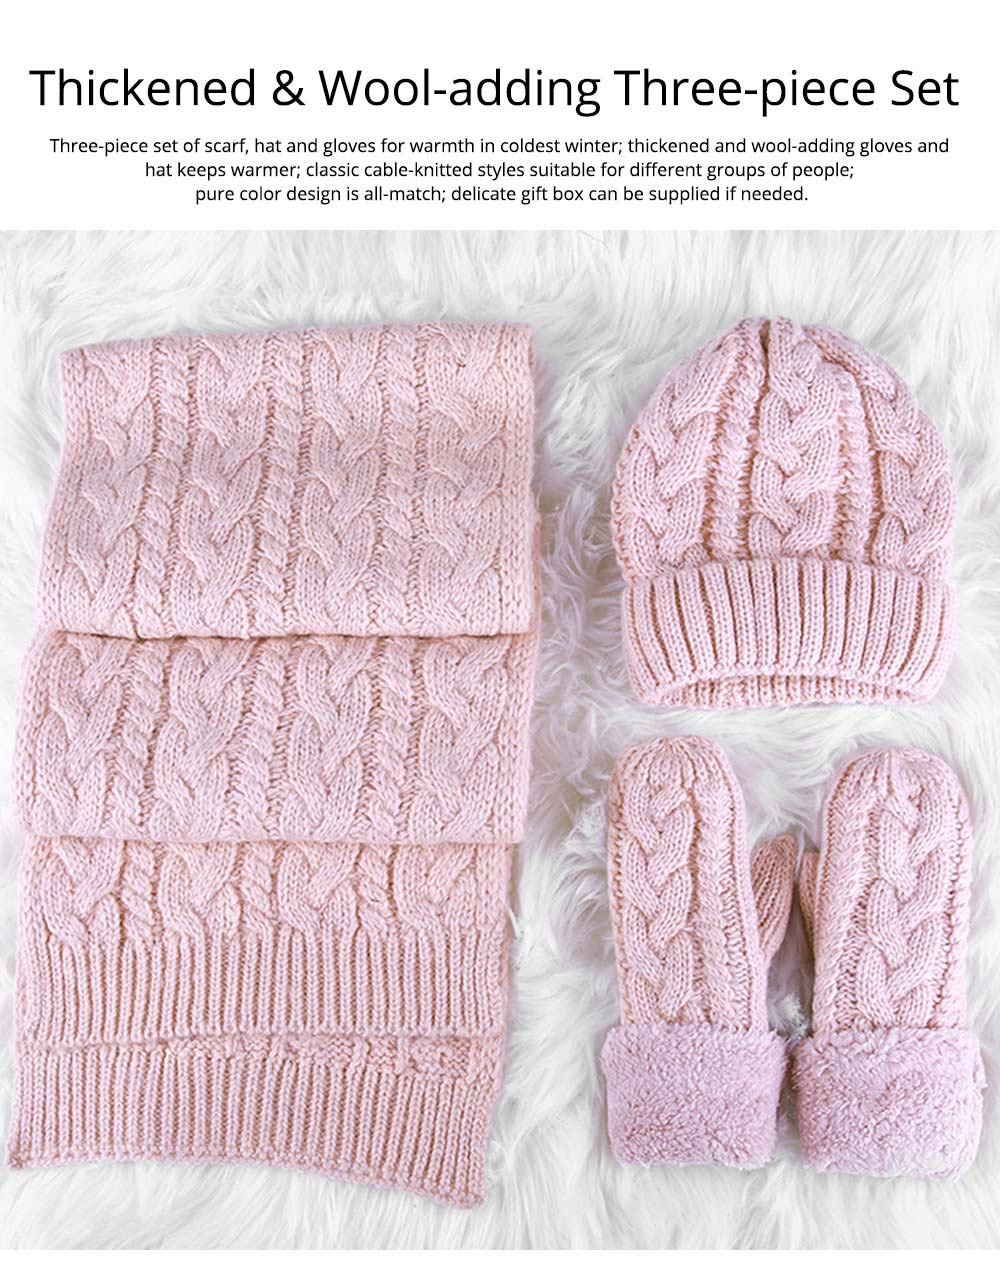 Set Of Scarf Hat Gloves as Gift for Girlfriends Confidant, Thickened Wool-added Three-piece Set for Warmth in Winter 7